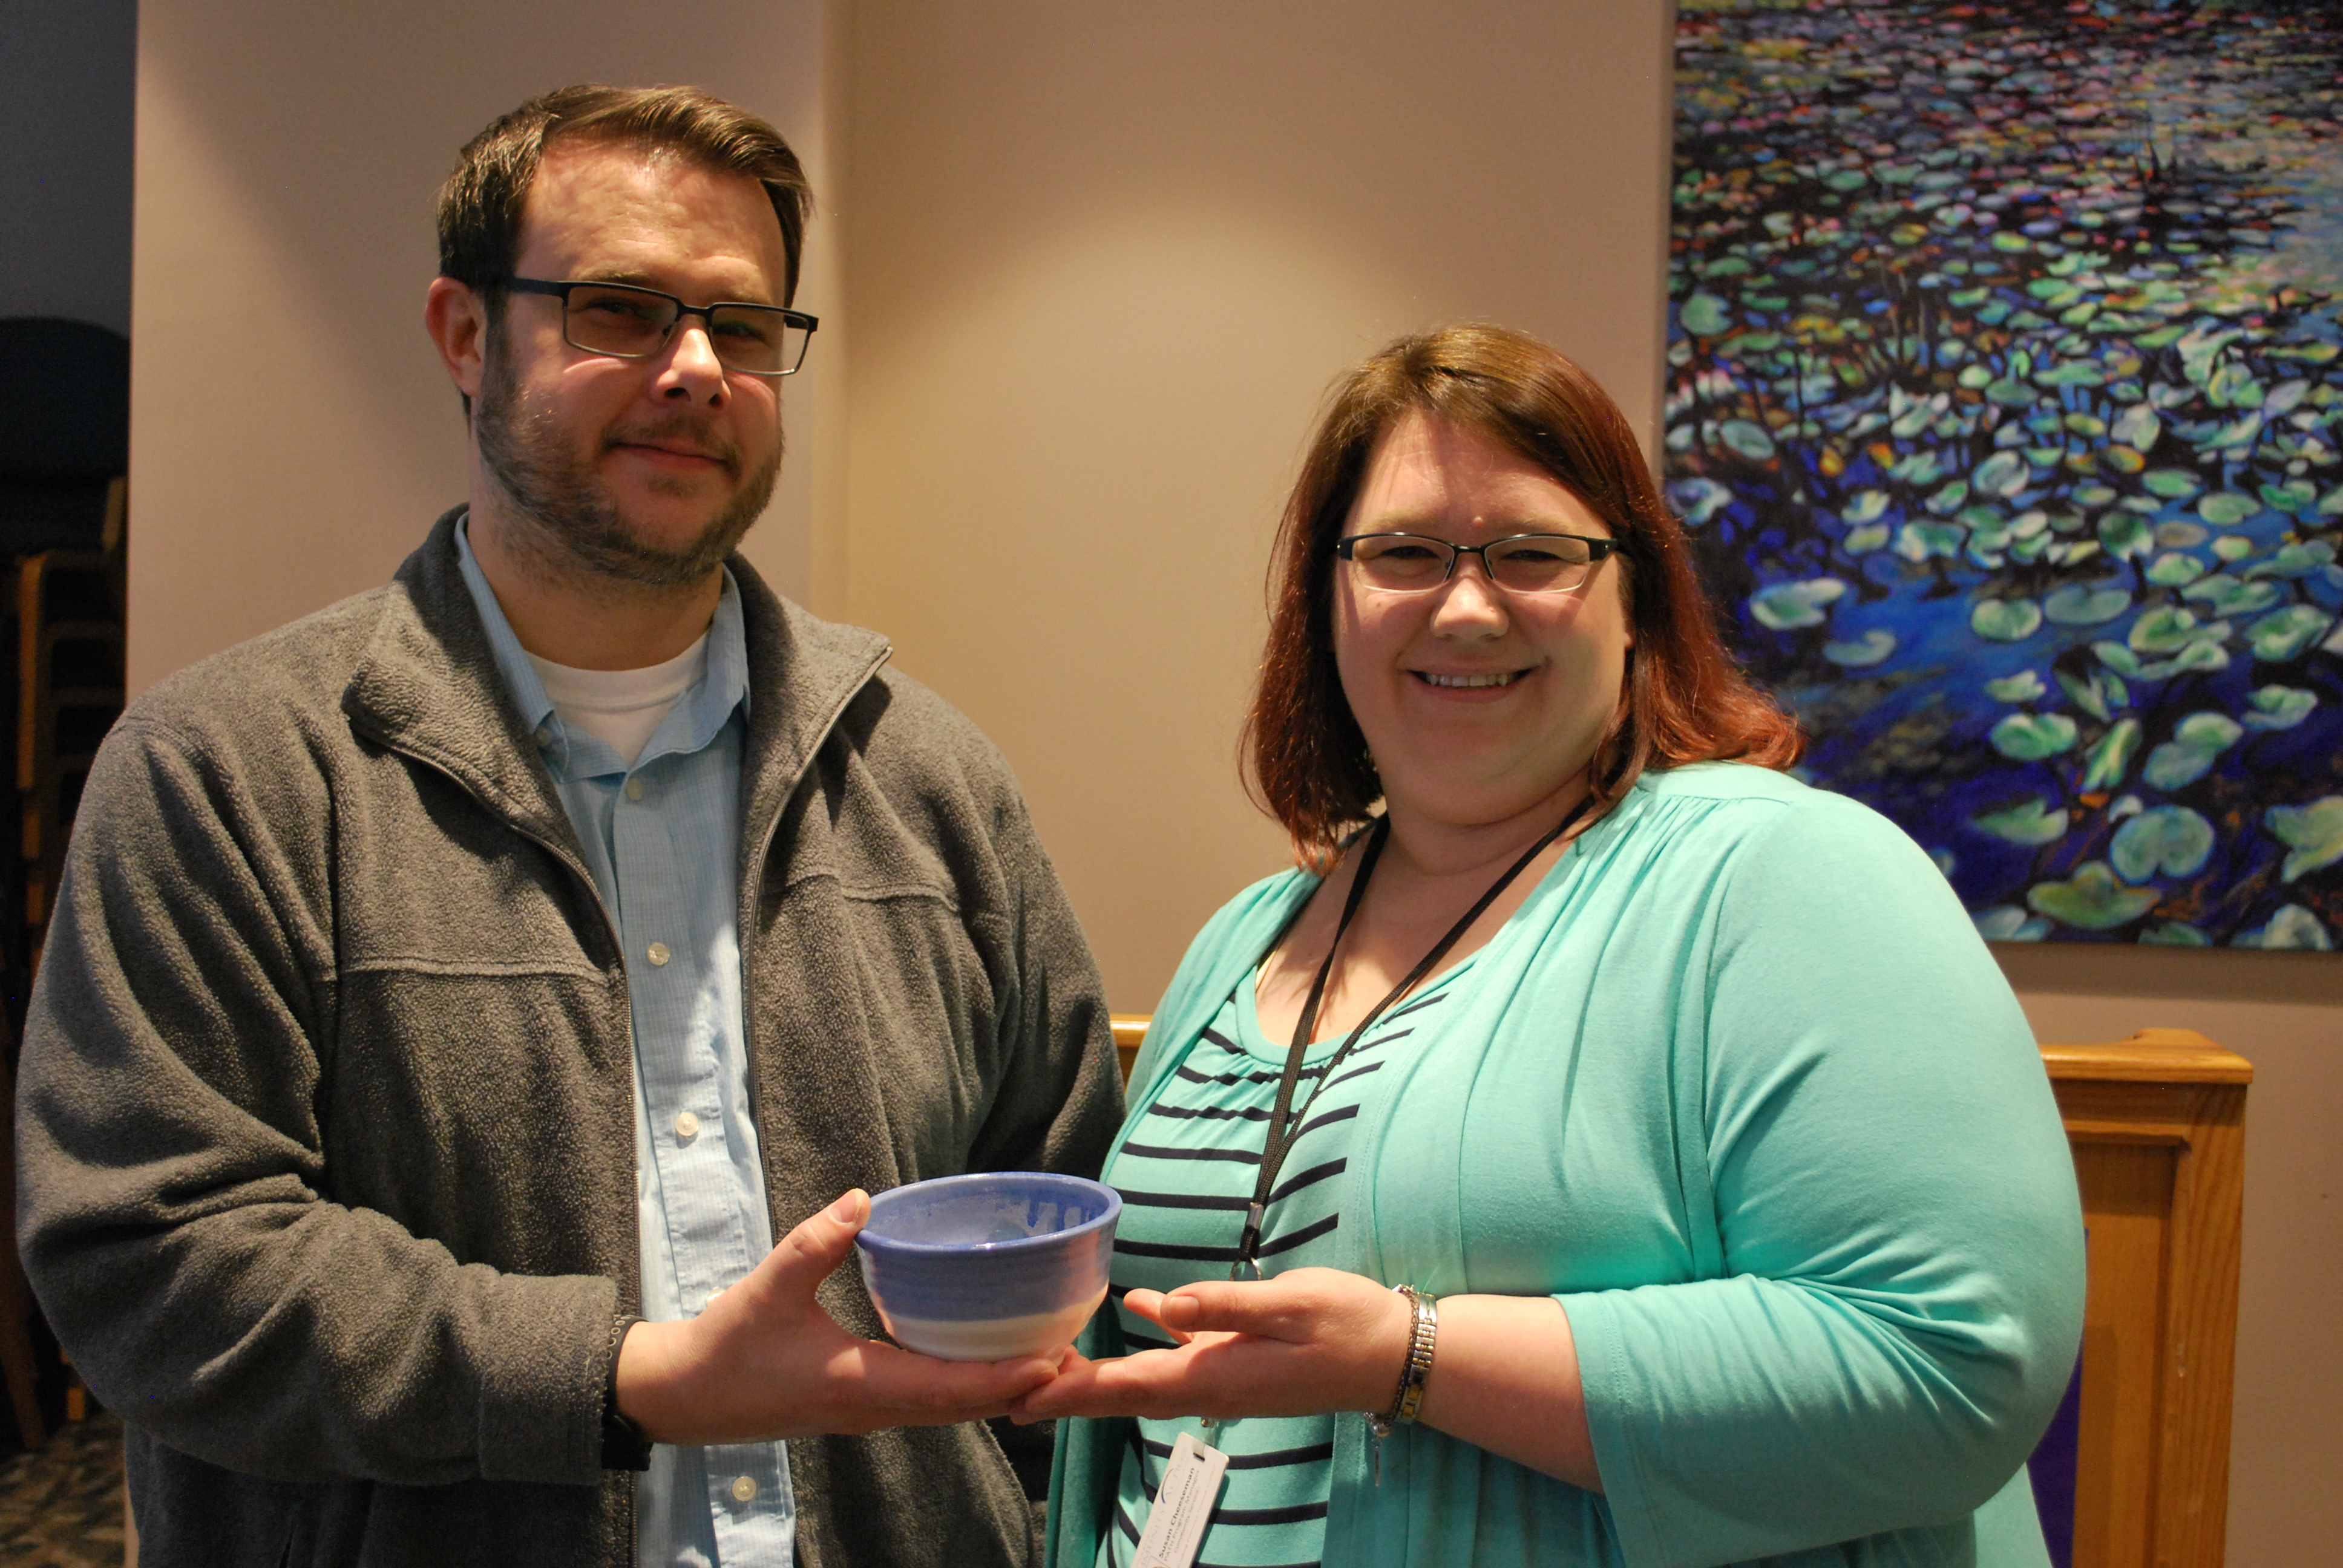 Kevin Kaplan and Susan Cheeseman with bowl from Empty Bowls event